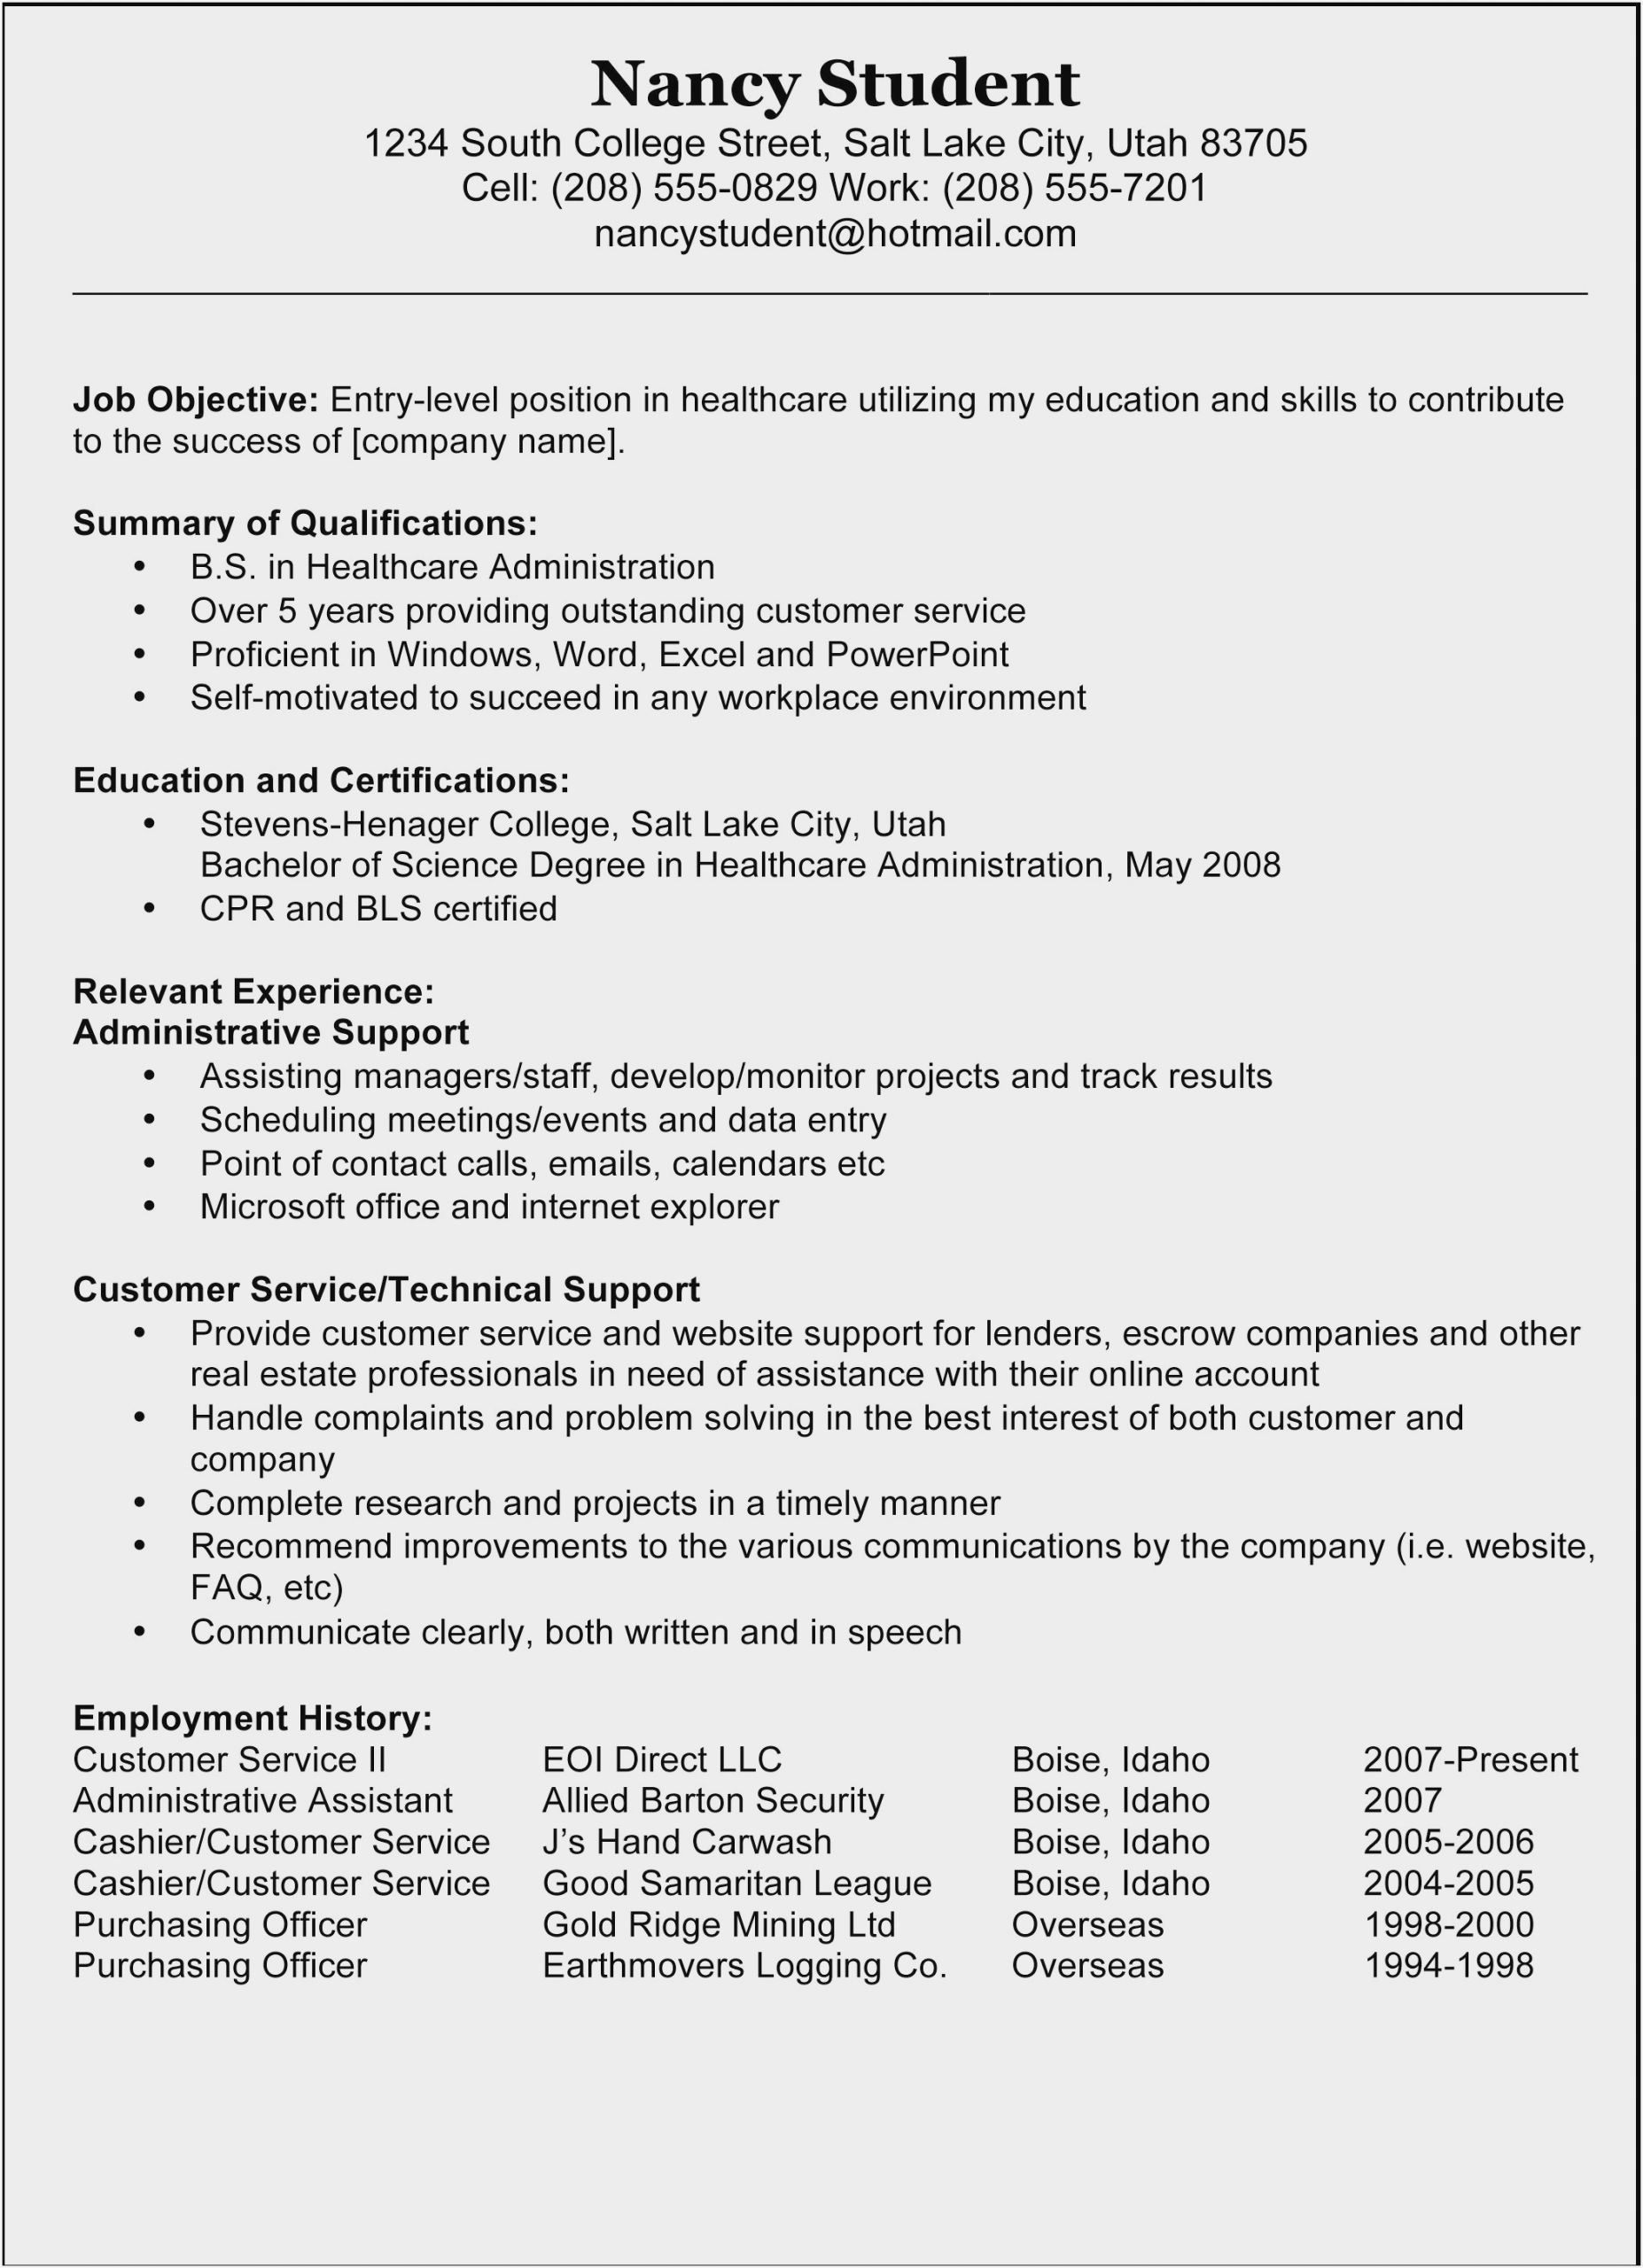 sample resume format for work abroad example of to apply job scaled research assistant Resume Example Of Resume To Apply Job